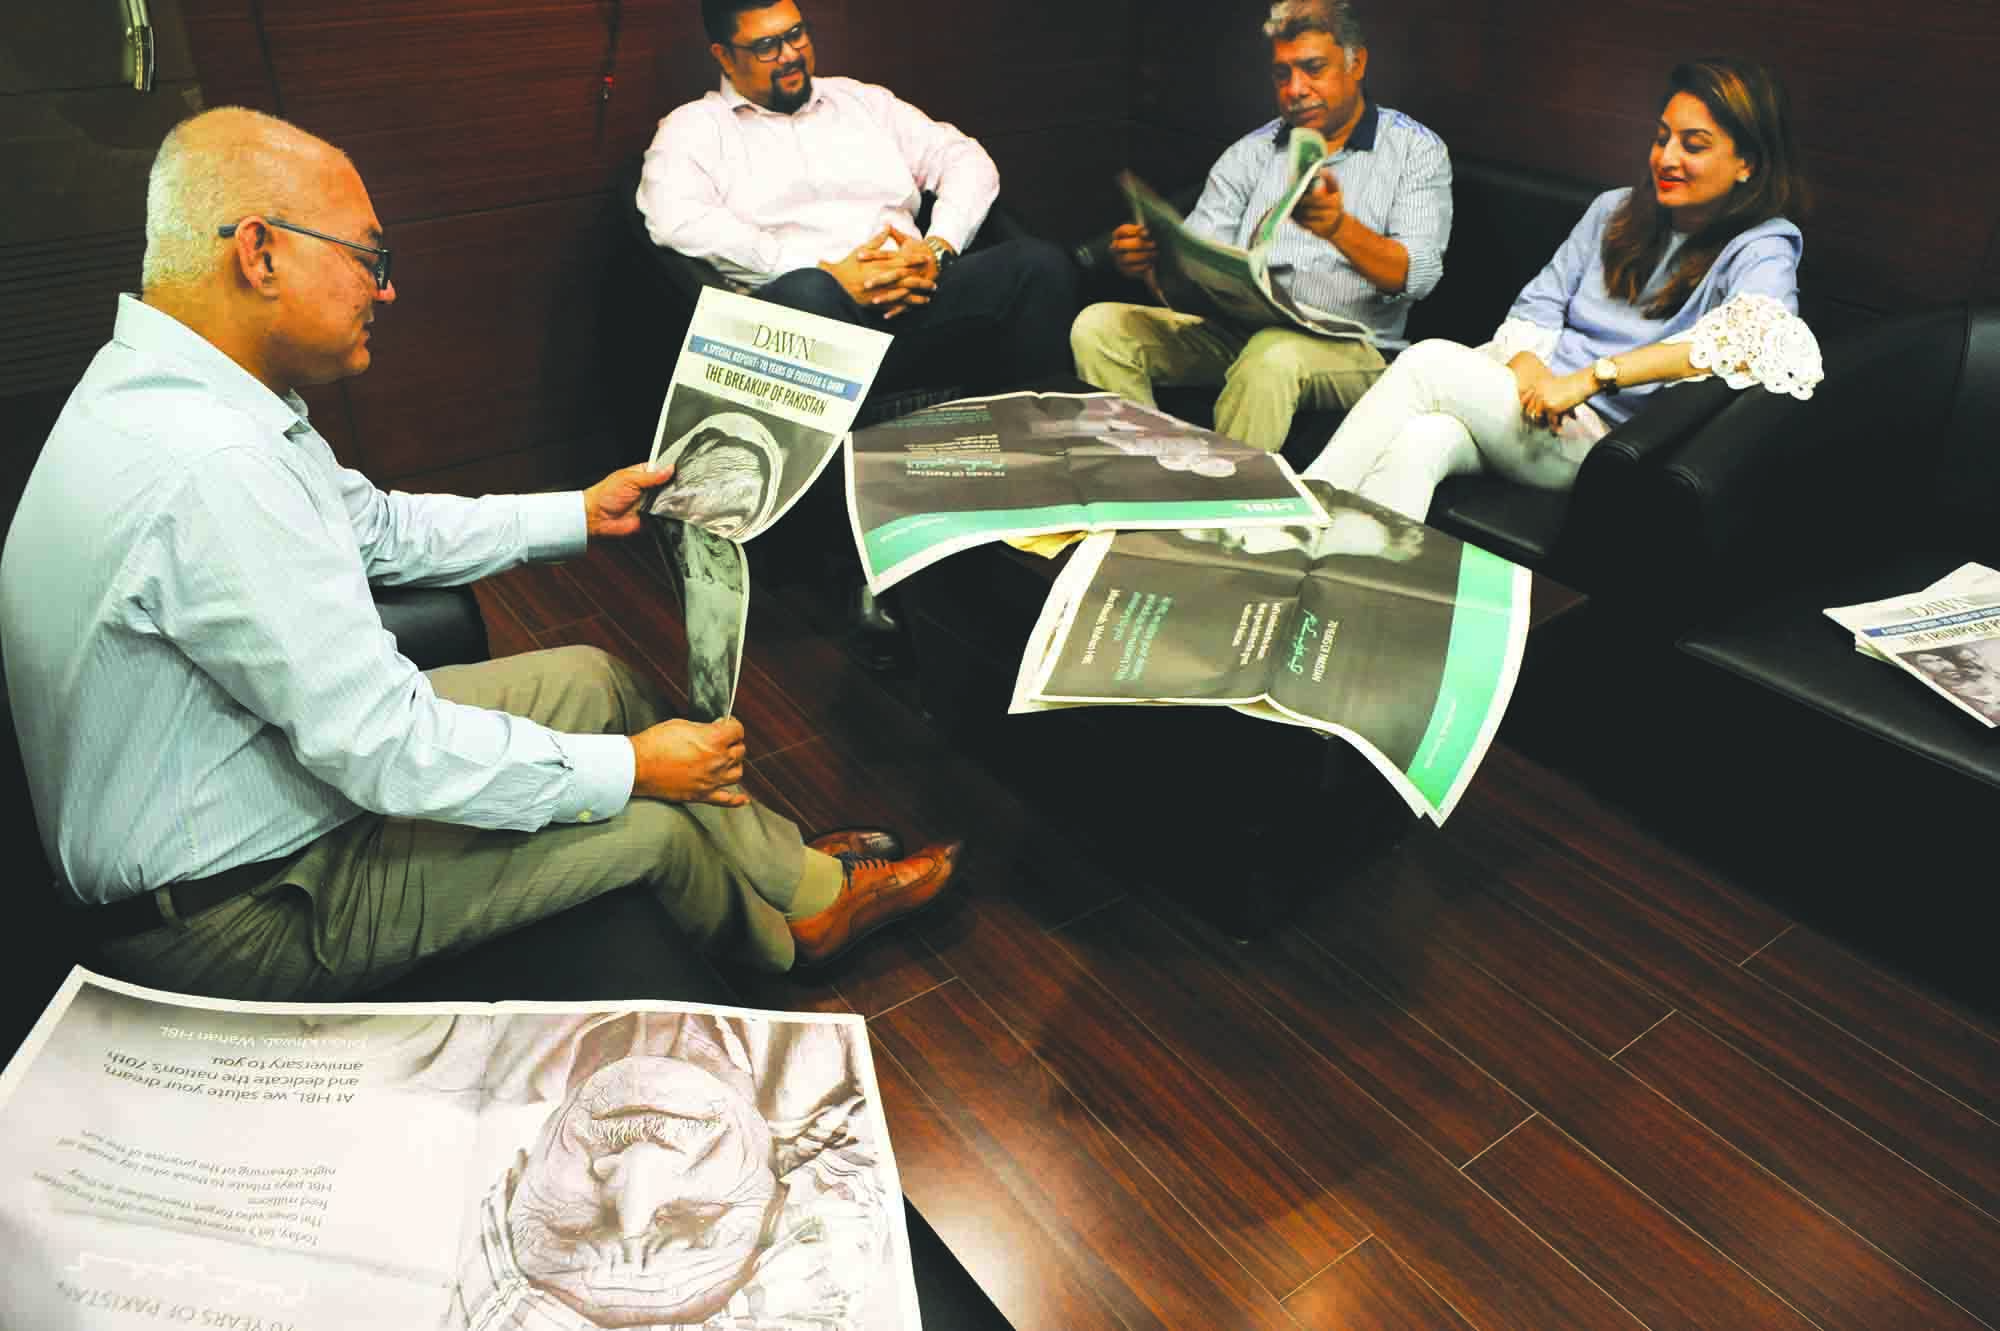 Fouad Husain (left) CEO, GroupM, and Kiran Khan (right) Chief Strategy Officer, GroupM, study the advertisements they have released on behalf of their client HBL. This series of advertisements released by GroupM were contained in 16 Special Reports of 70 Years of Pakistan & DAWN, published by The Dawn Media Group between August 19 and December 25, 2017. The Special Reports were the second instalment of The Dawn Media Group's tribute to 70 years of Pakistan. GroupM is a leading global media investment management company for WPP media agencies, which include Mindshare, Wavemaker, Mediacom and M/six and Xaxis. The first media buying house to open in Pakistan was Pak Mediacom in 1996, followed by Mindshare in 1999. In 2008, consolidation took place under the GroupM banner and included Maxus, Media Edge and Mindshare. In Pakistan, GroupM contributes approximately a 40% share to the industry as a traditional media agency, and a 50% share as a digital agency. (photo: Arif Mahmood/ Dawn White Star)